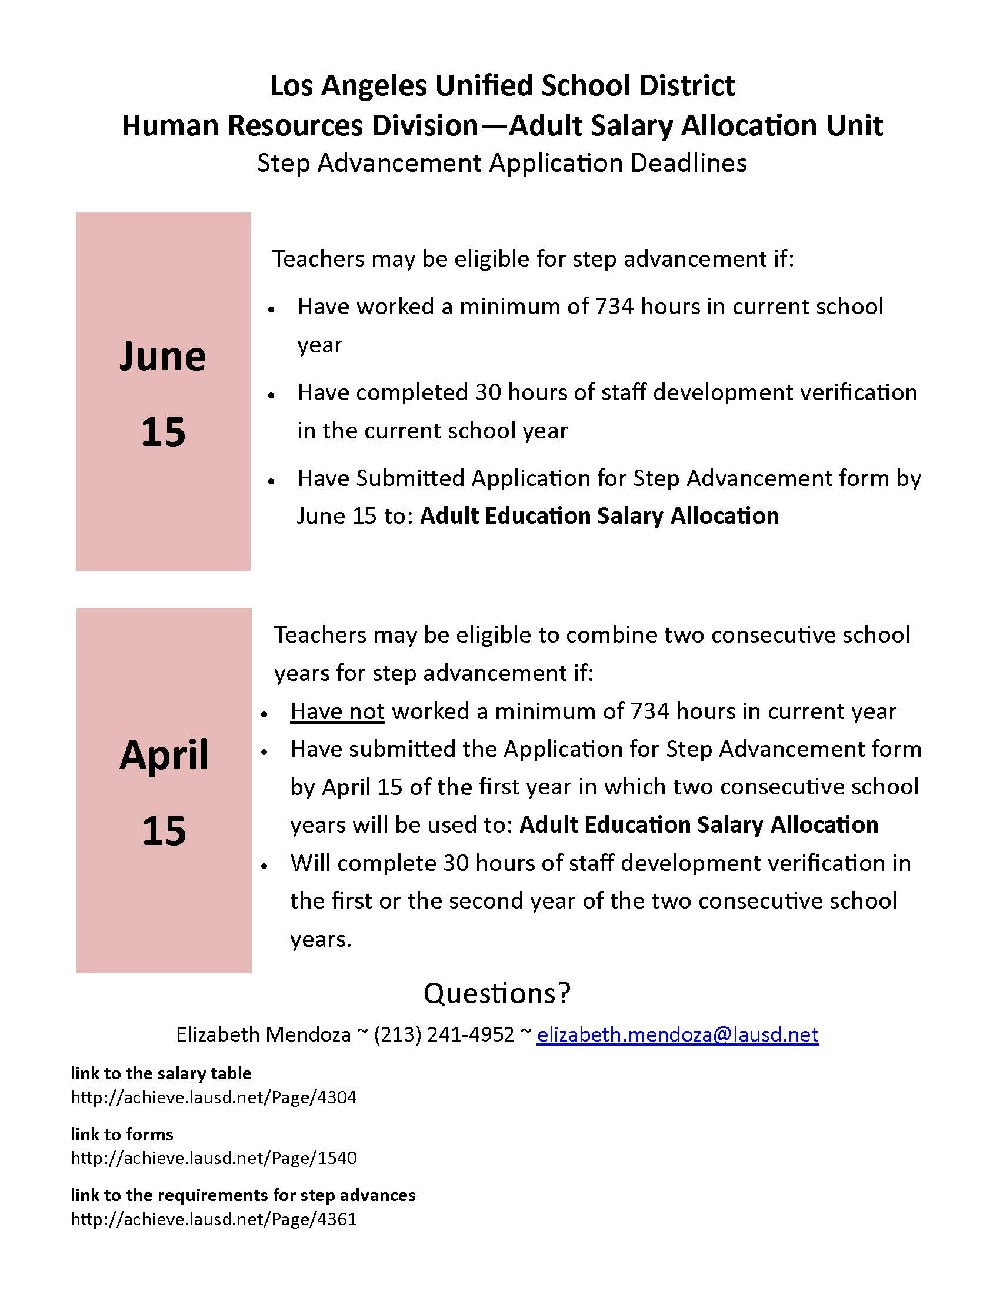 Step Advancement Application Deadlines.jpg